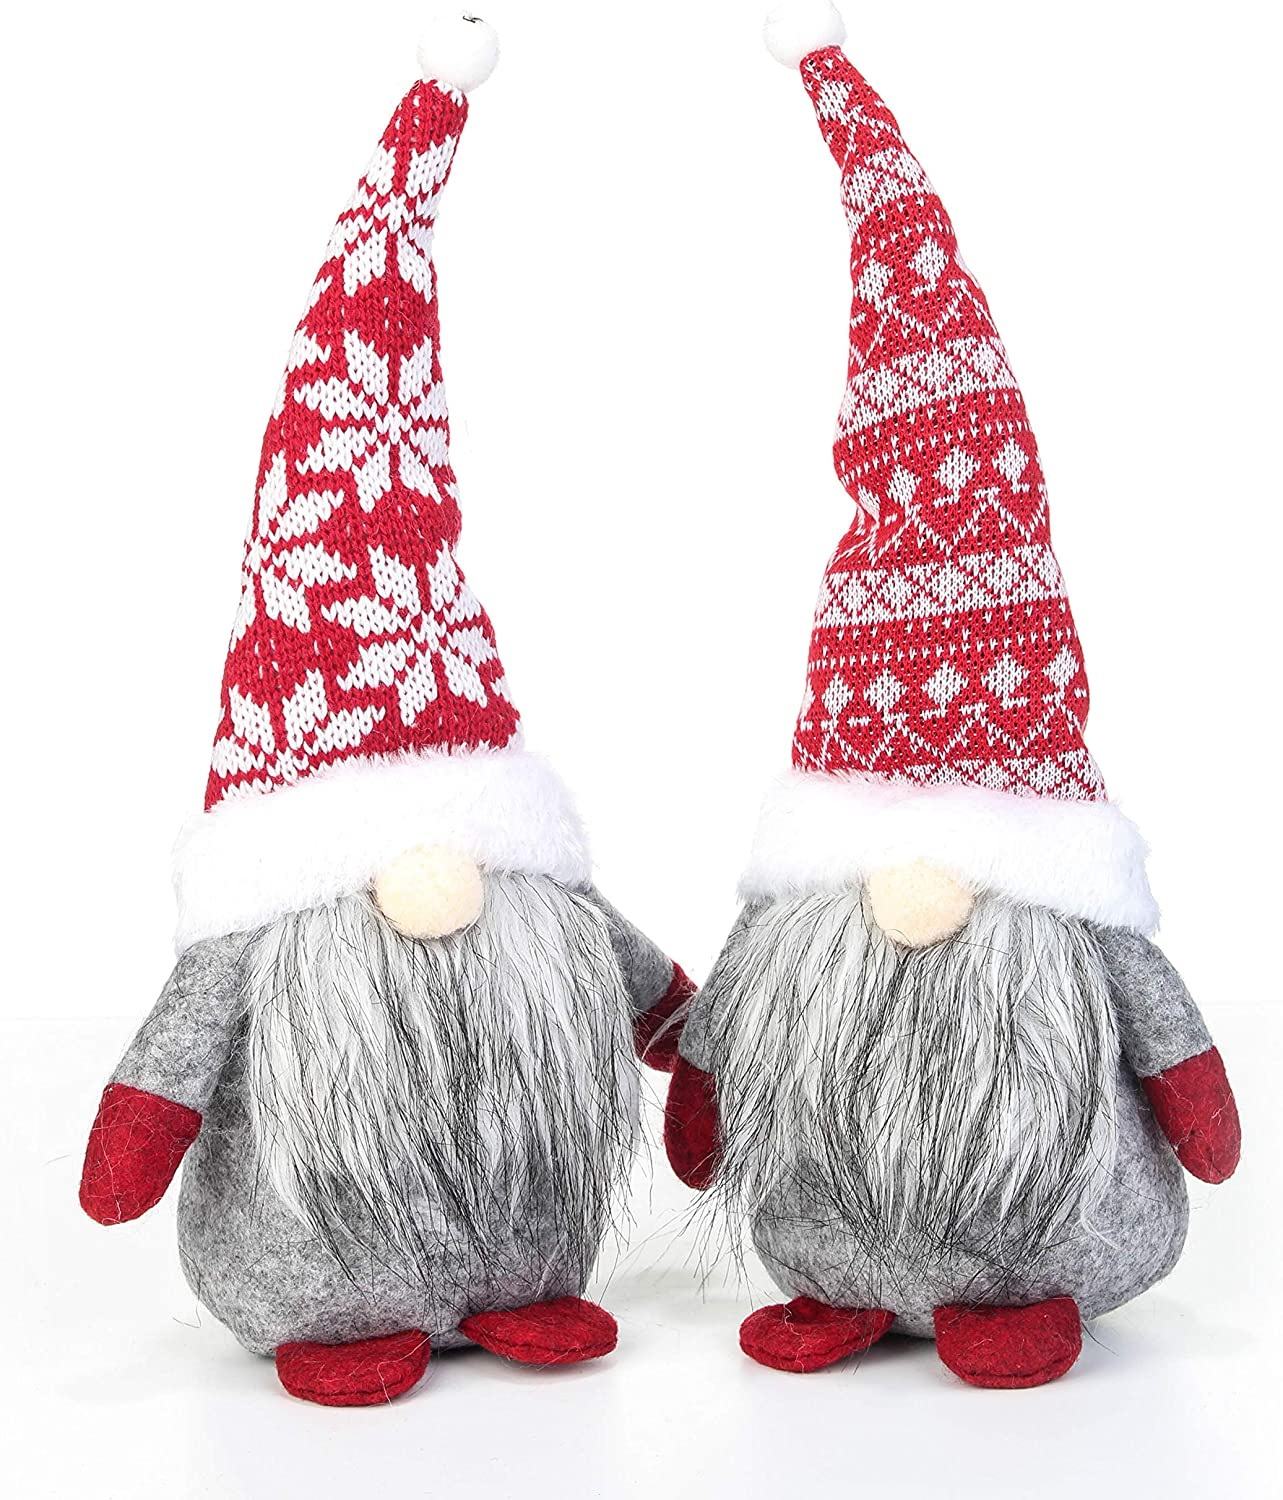 Costyleen Handmade Swedish Tomte Scandinavian Christmas Santa Gnome Plush Home Ornaments Table Decor Festival Decoration Xmas Gifts 2pc - Retro Red White Knit Hat 11.4 inches